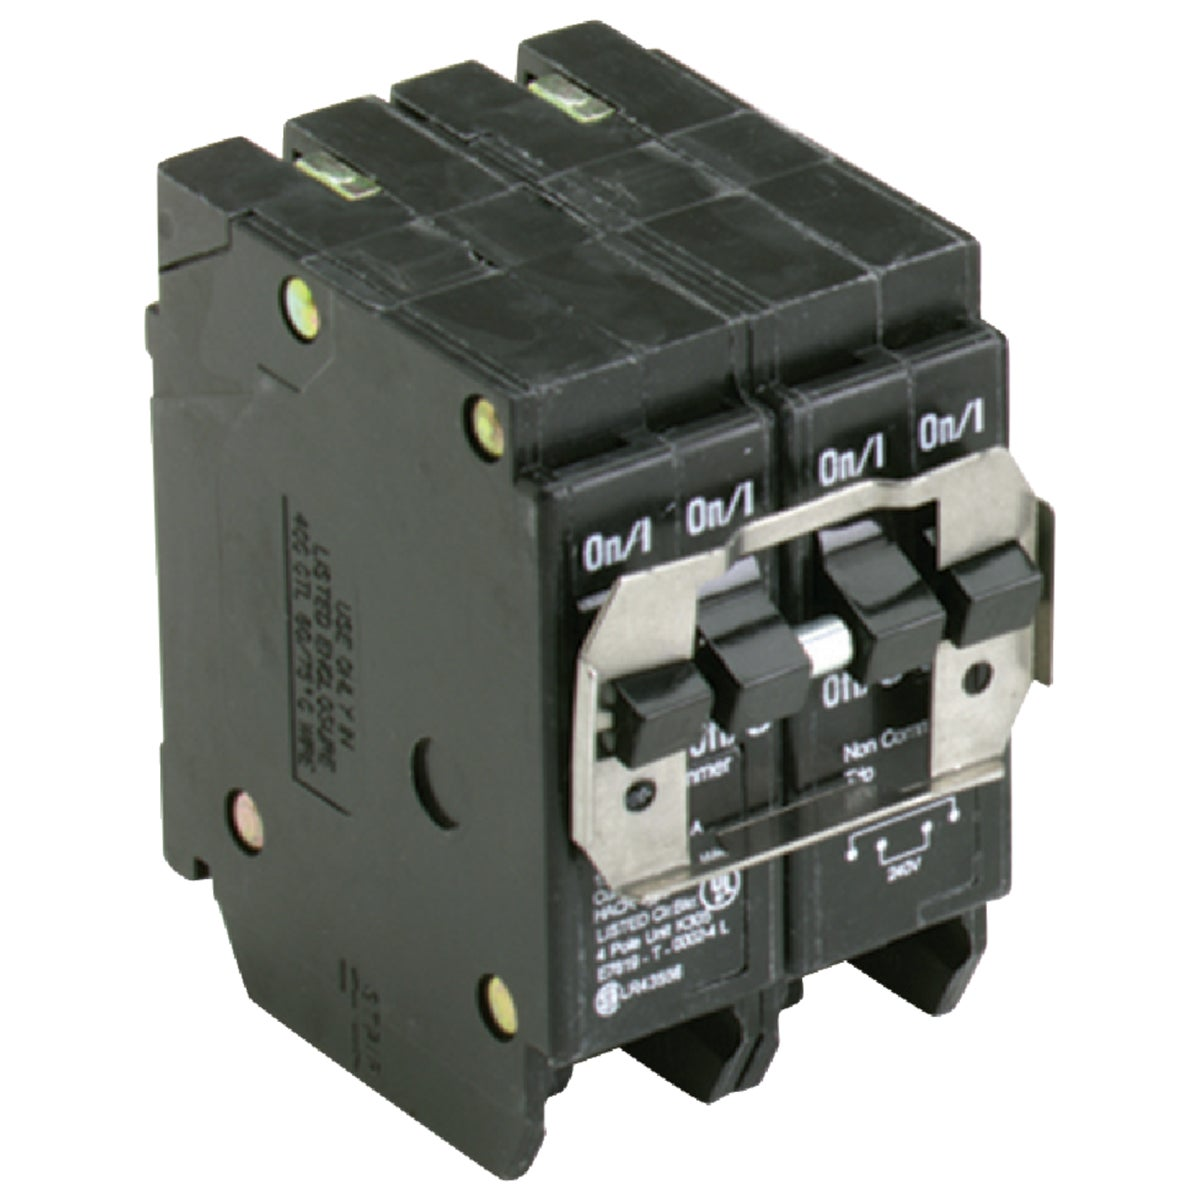 20A/20A CIRCUIT BREAKER - BQ220220 by Eaton Corporation